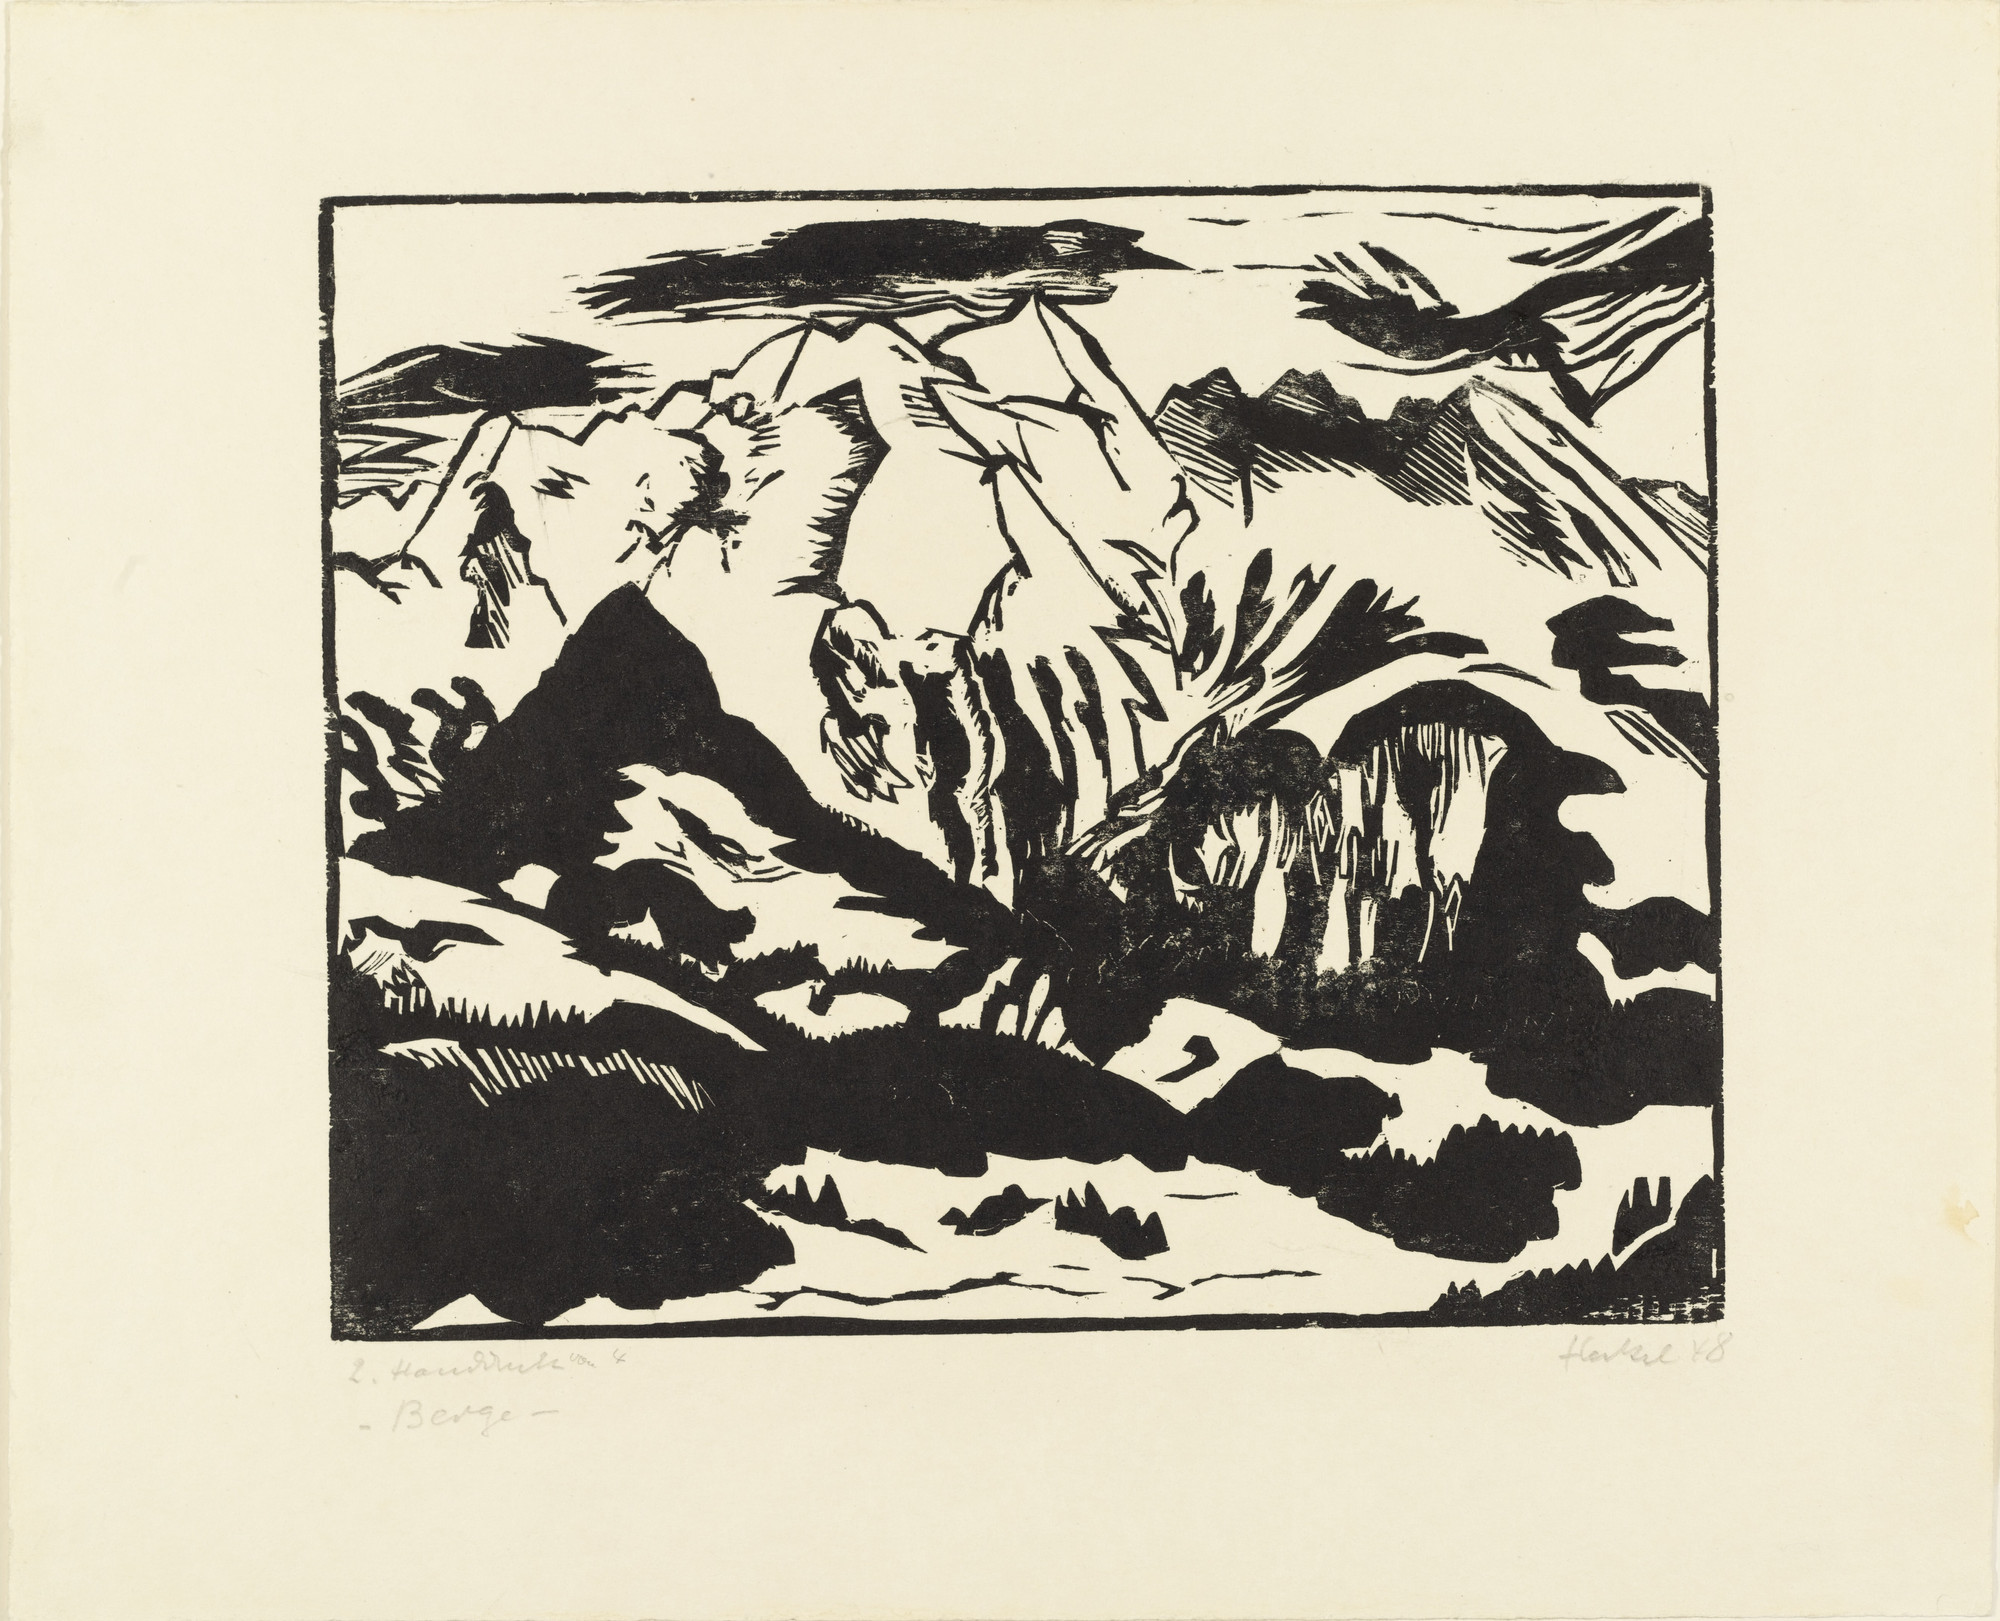 Erich Heckel. Mountains (Berge). 1948